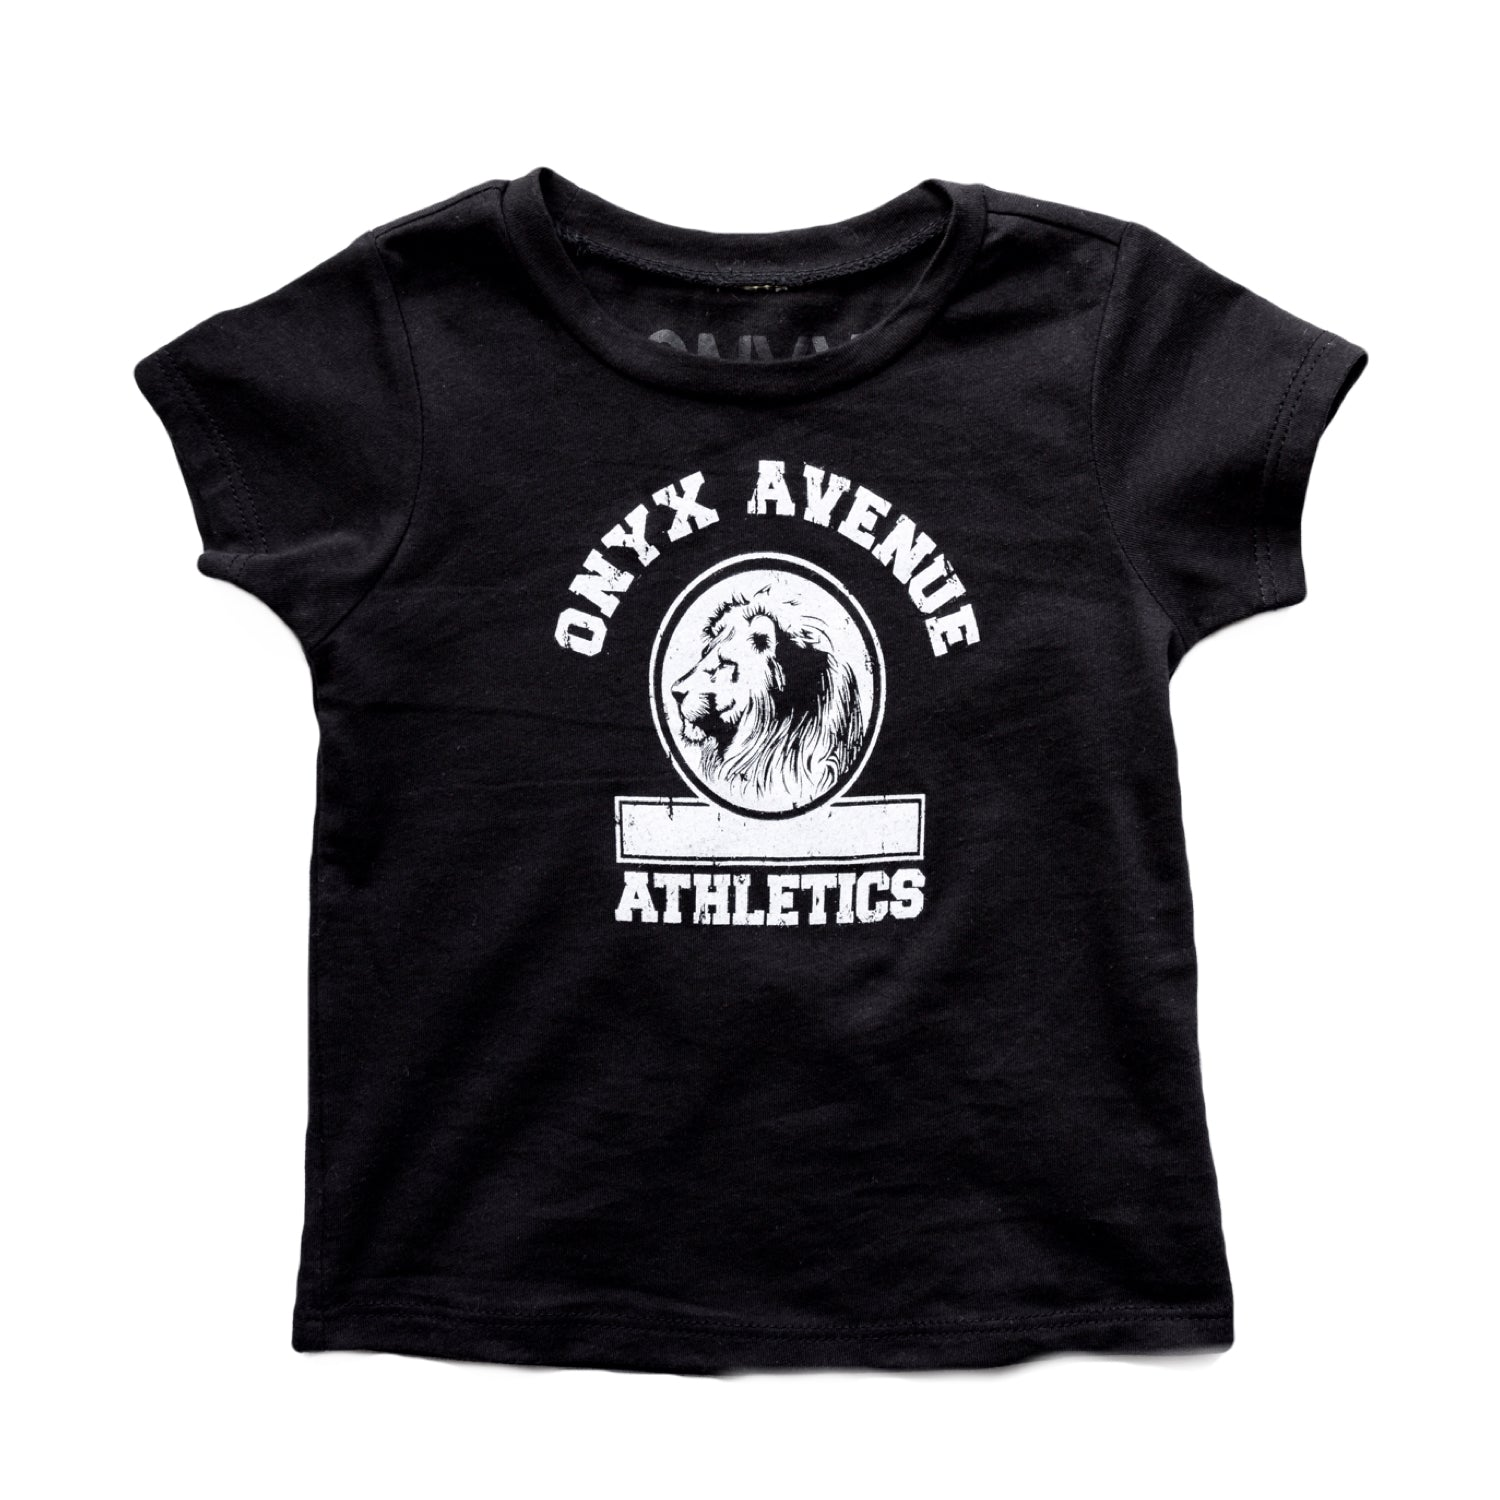 Athletics (Baby)